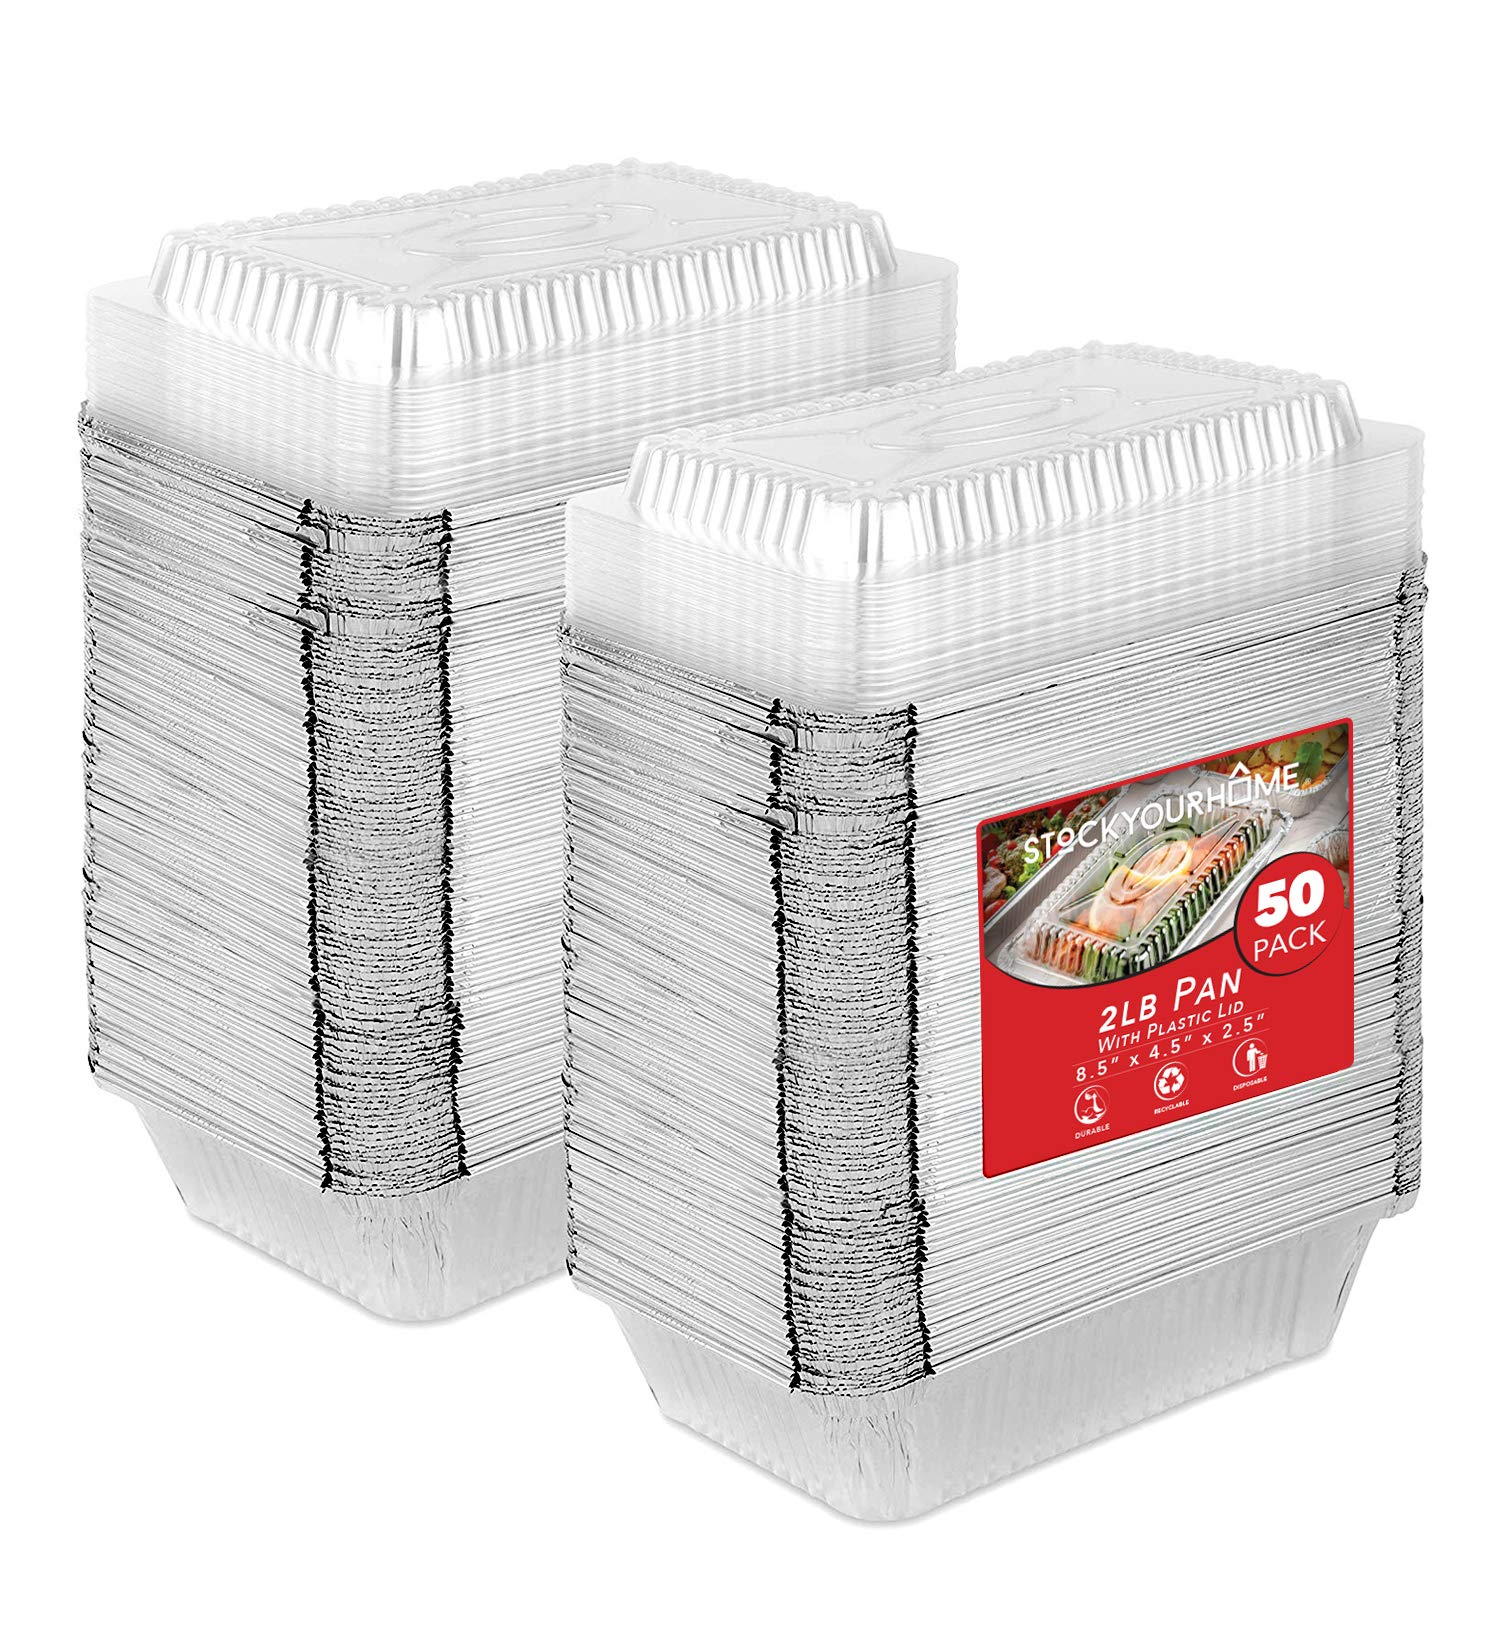 """50 Pack Disposable Takeout Containers with Clear Lids – 2 Lb Capacity Aluminum Foil Leftover Take Home Containers for Food – Secure Lids– Eco Friendly and Recyclable Aluminum Pans – 8"""" Inch Drip Pans"""